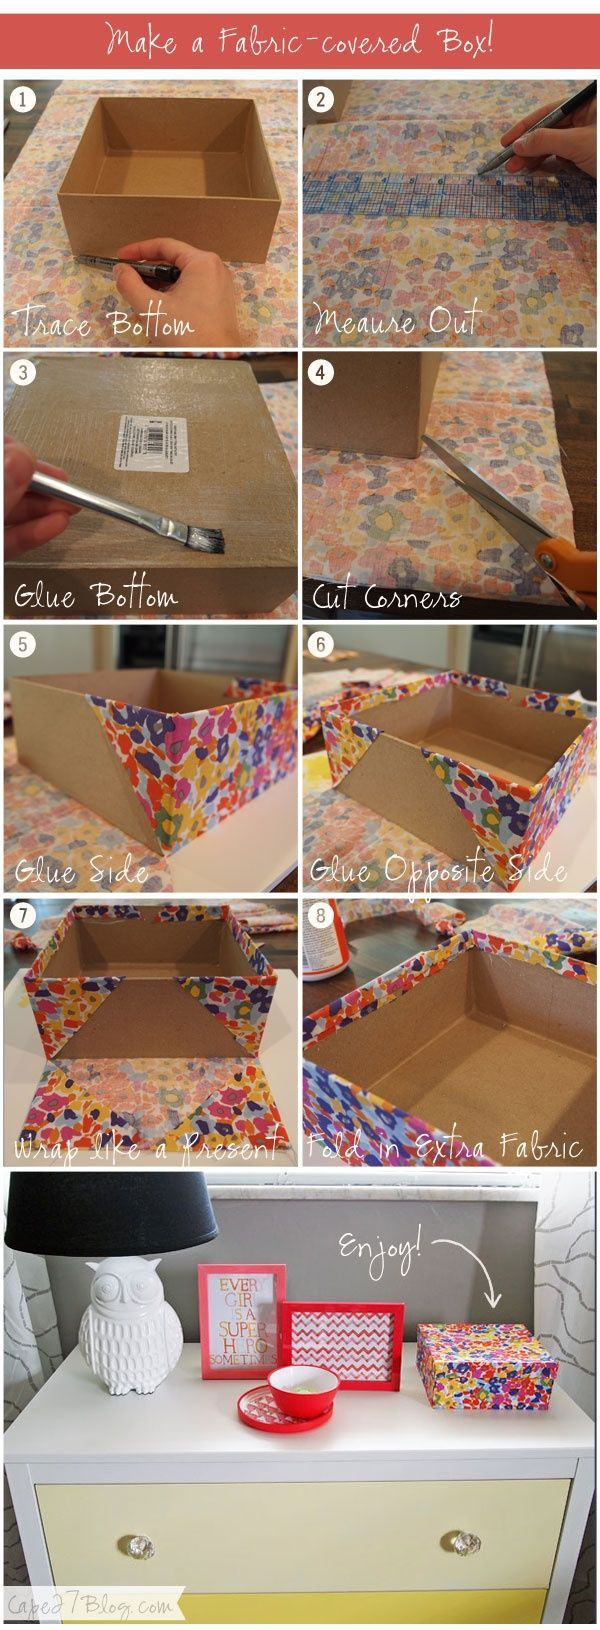 DIY Fabric Covered Box. Easy way to make kid-friendly storage if you use a sturdy box.